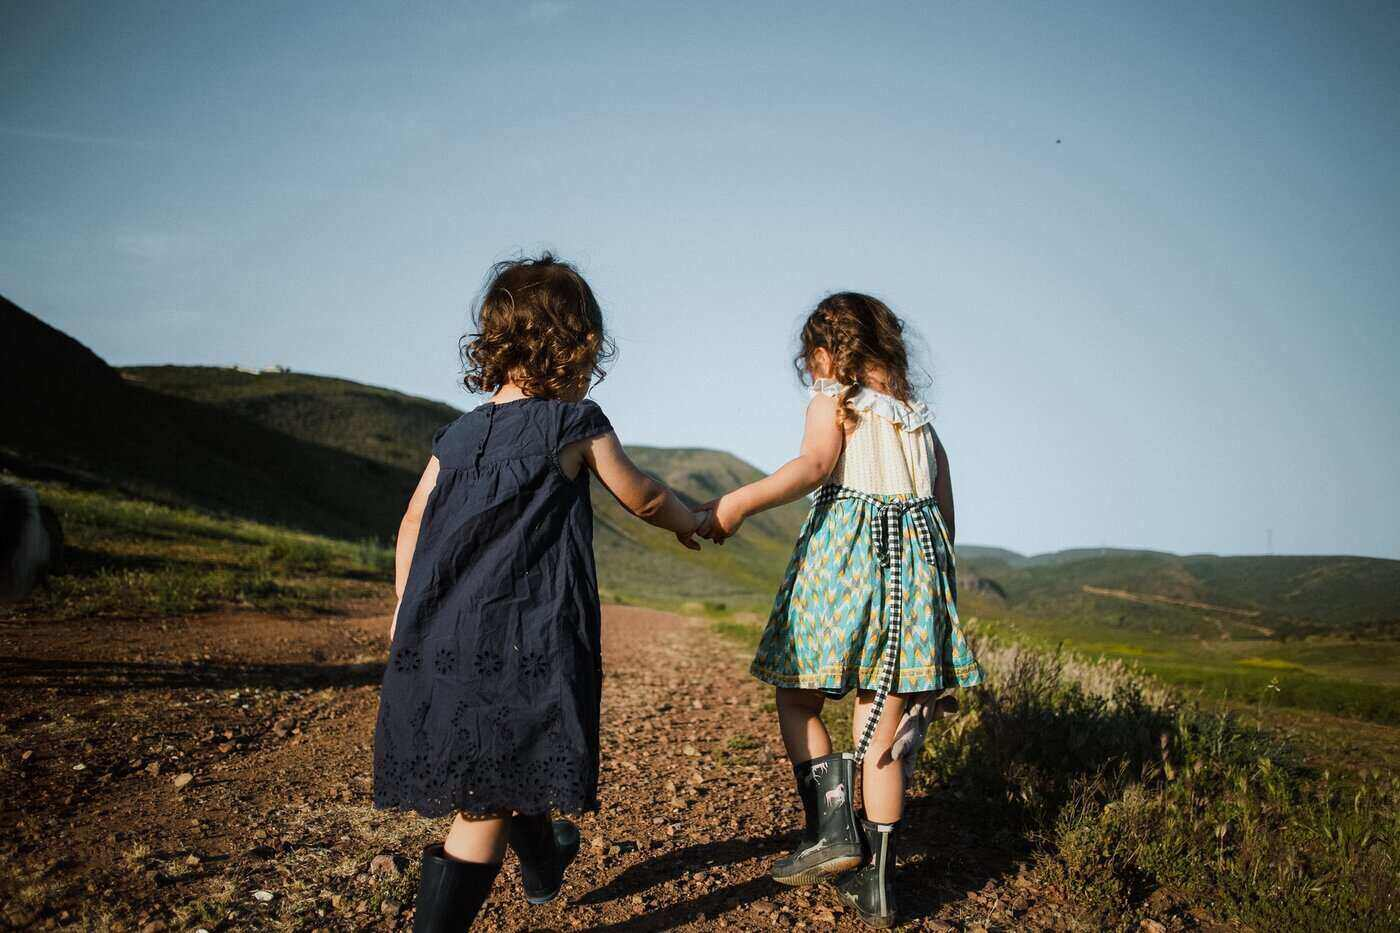 two girls holding hands going up mountain path - clothing your kids